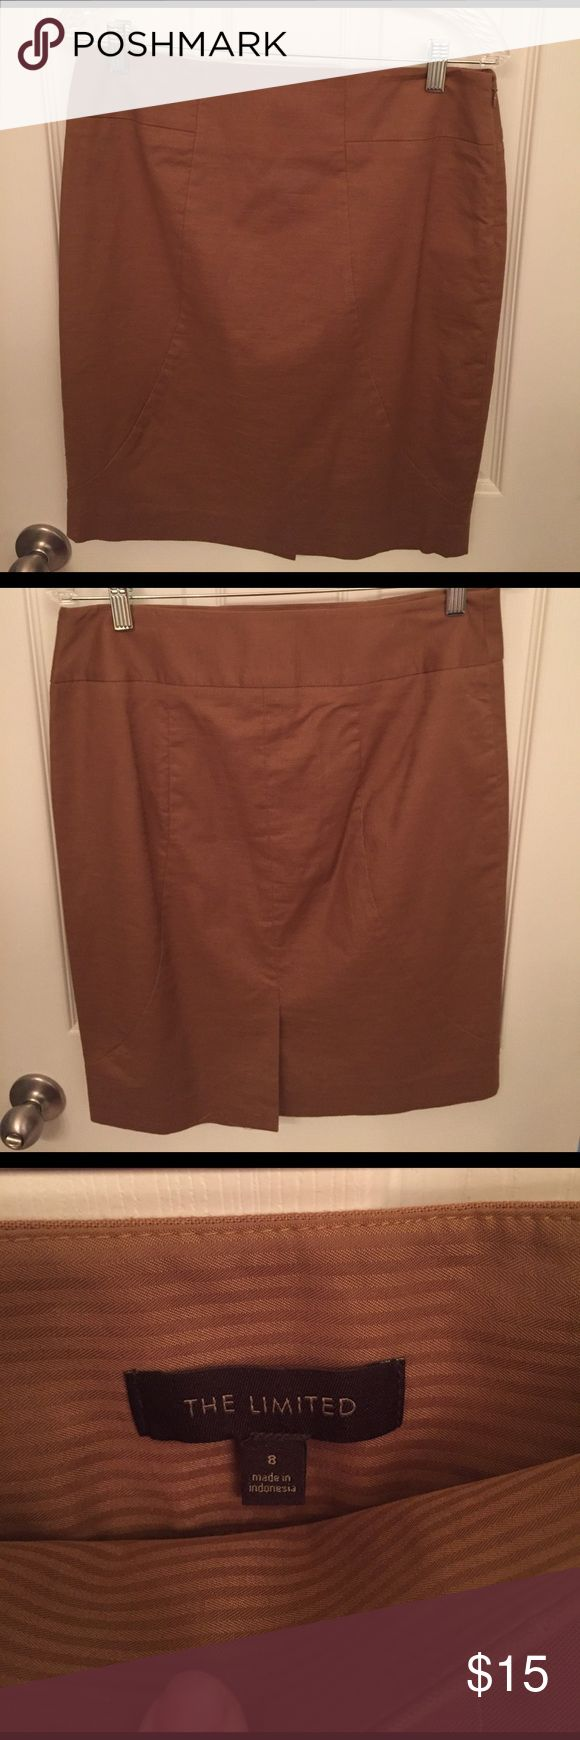 The Limited camel brown pencil skirt Camel brown pencil skirt from the Limited. Worn once size 8. excellent condition. The Limited Skirts Pencil